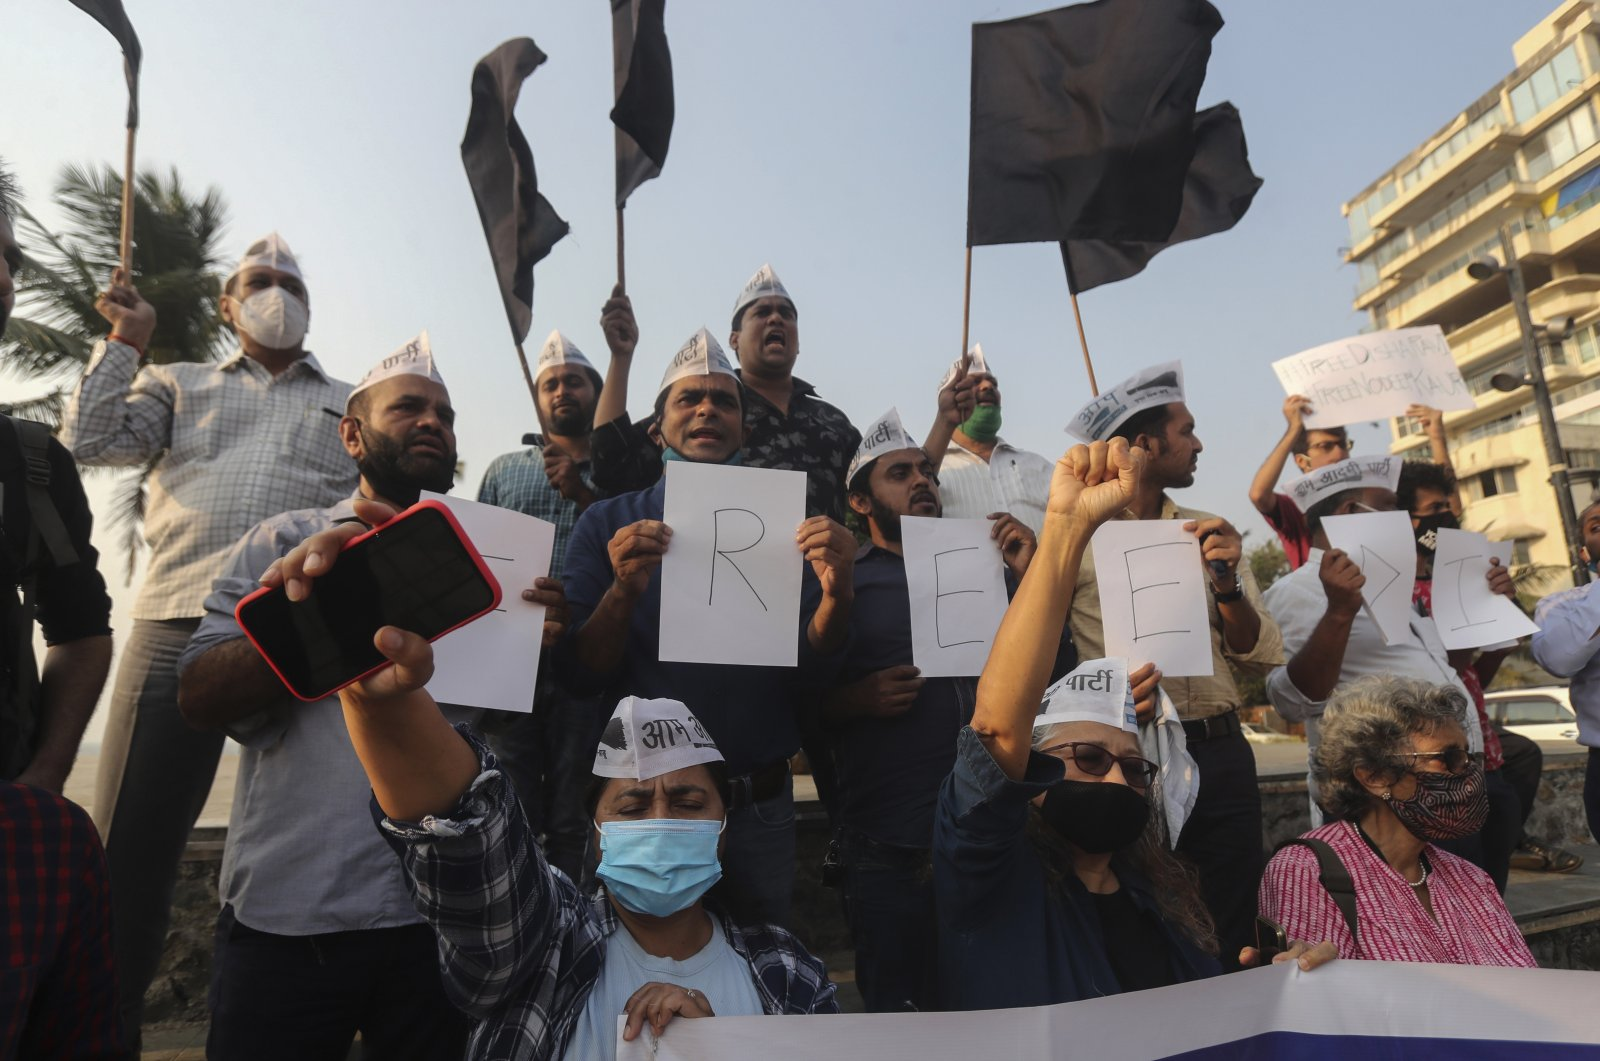 Members of Aam Aadmi Party shout slogans demanding the release of Indian climate activist Disha Ravi, during a protest in Mumbai, India, Feb. 15, 2021. (AP Photo)